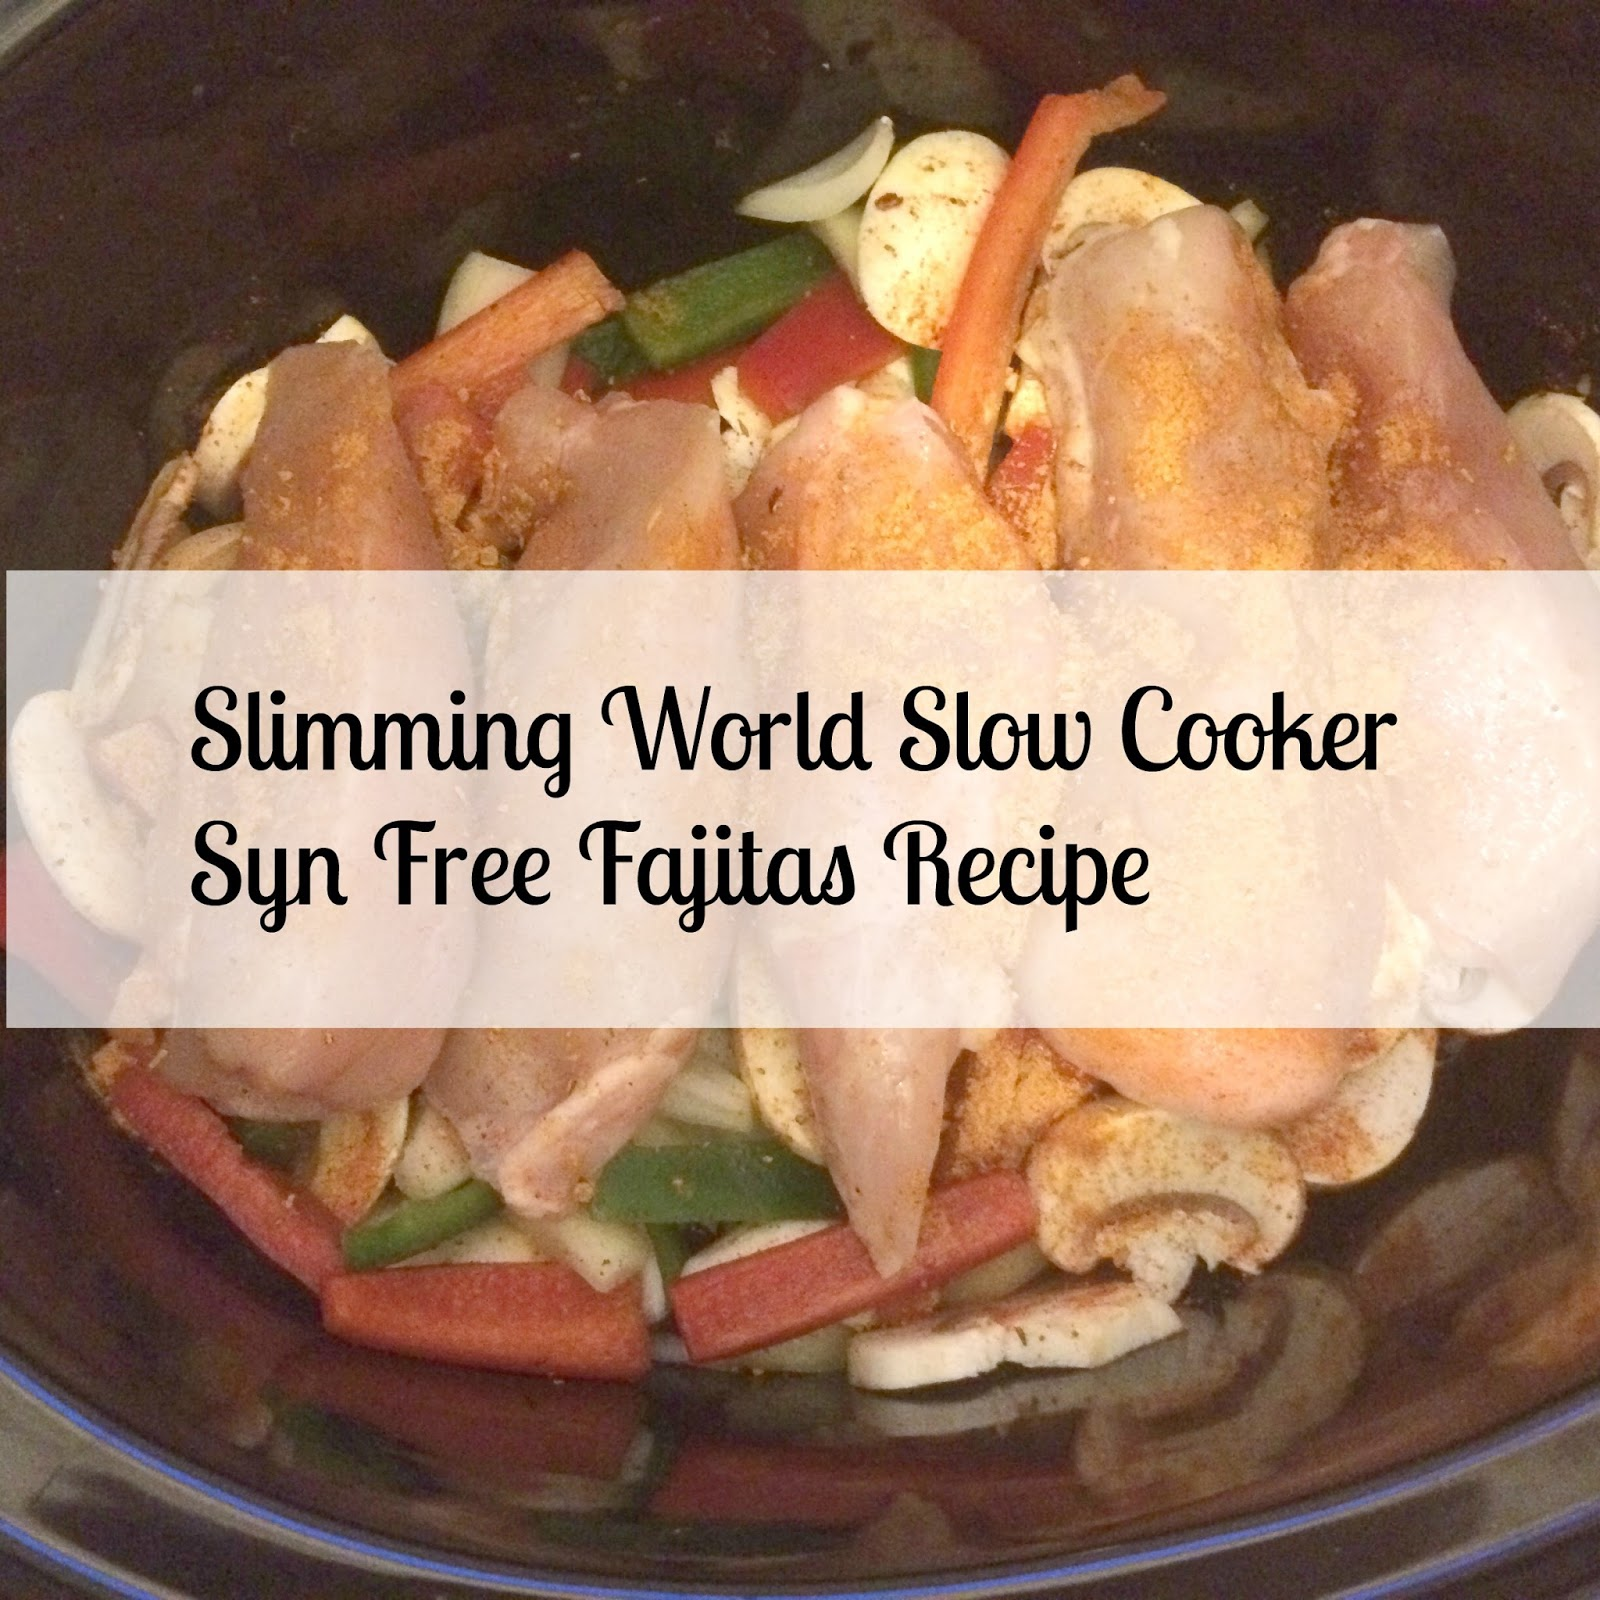 Slimming world slow cooker chicken fajitas recipe Slimming world recipes for 1 person